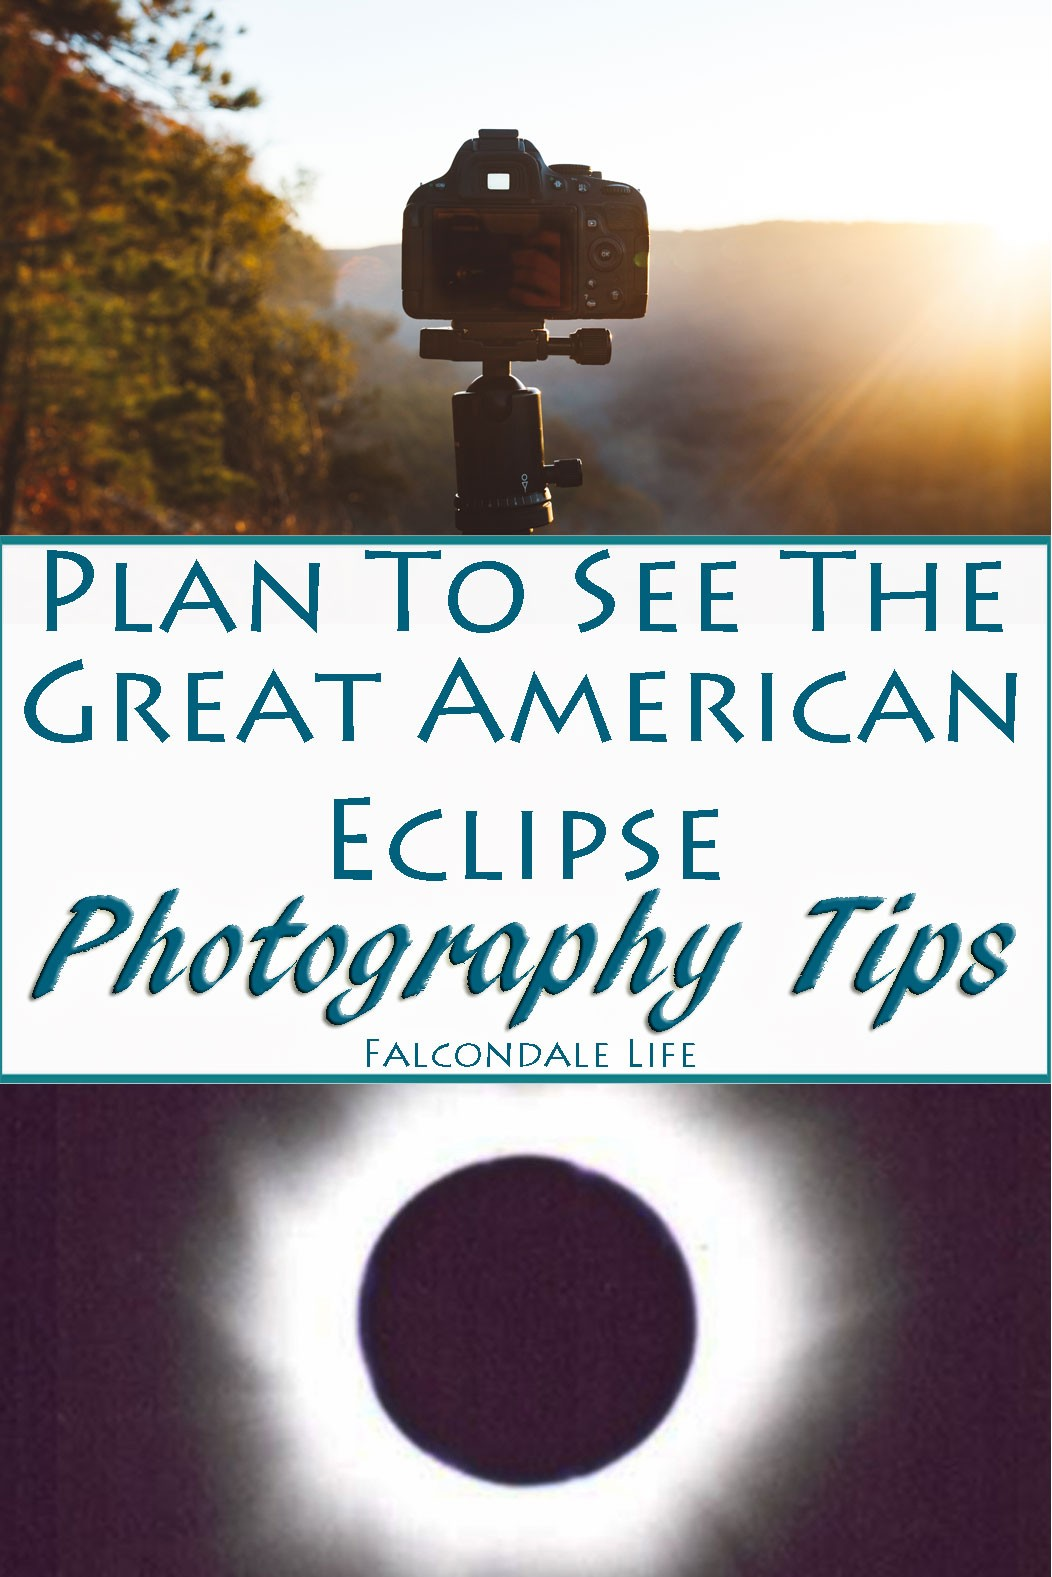 Plan to view the great American eclipse with photography tips - on Falcondale Life blog. Simple photography tips with no extra equipment and planning a trip to see the solar eclipse.